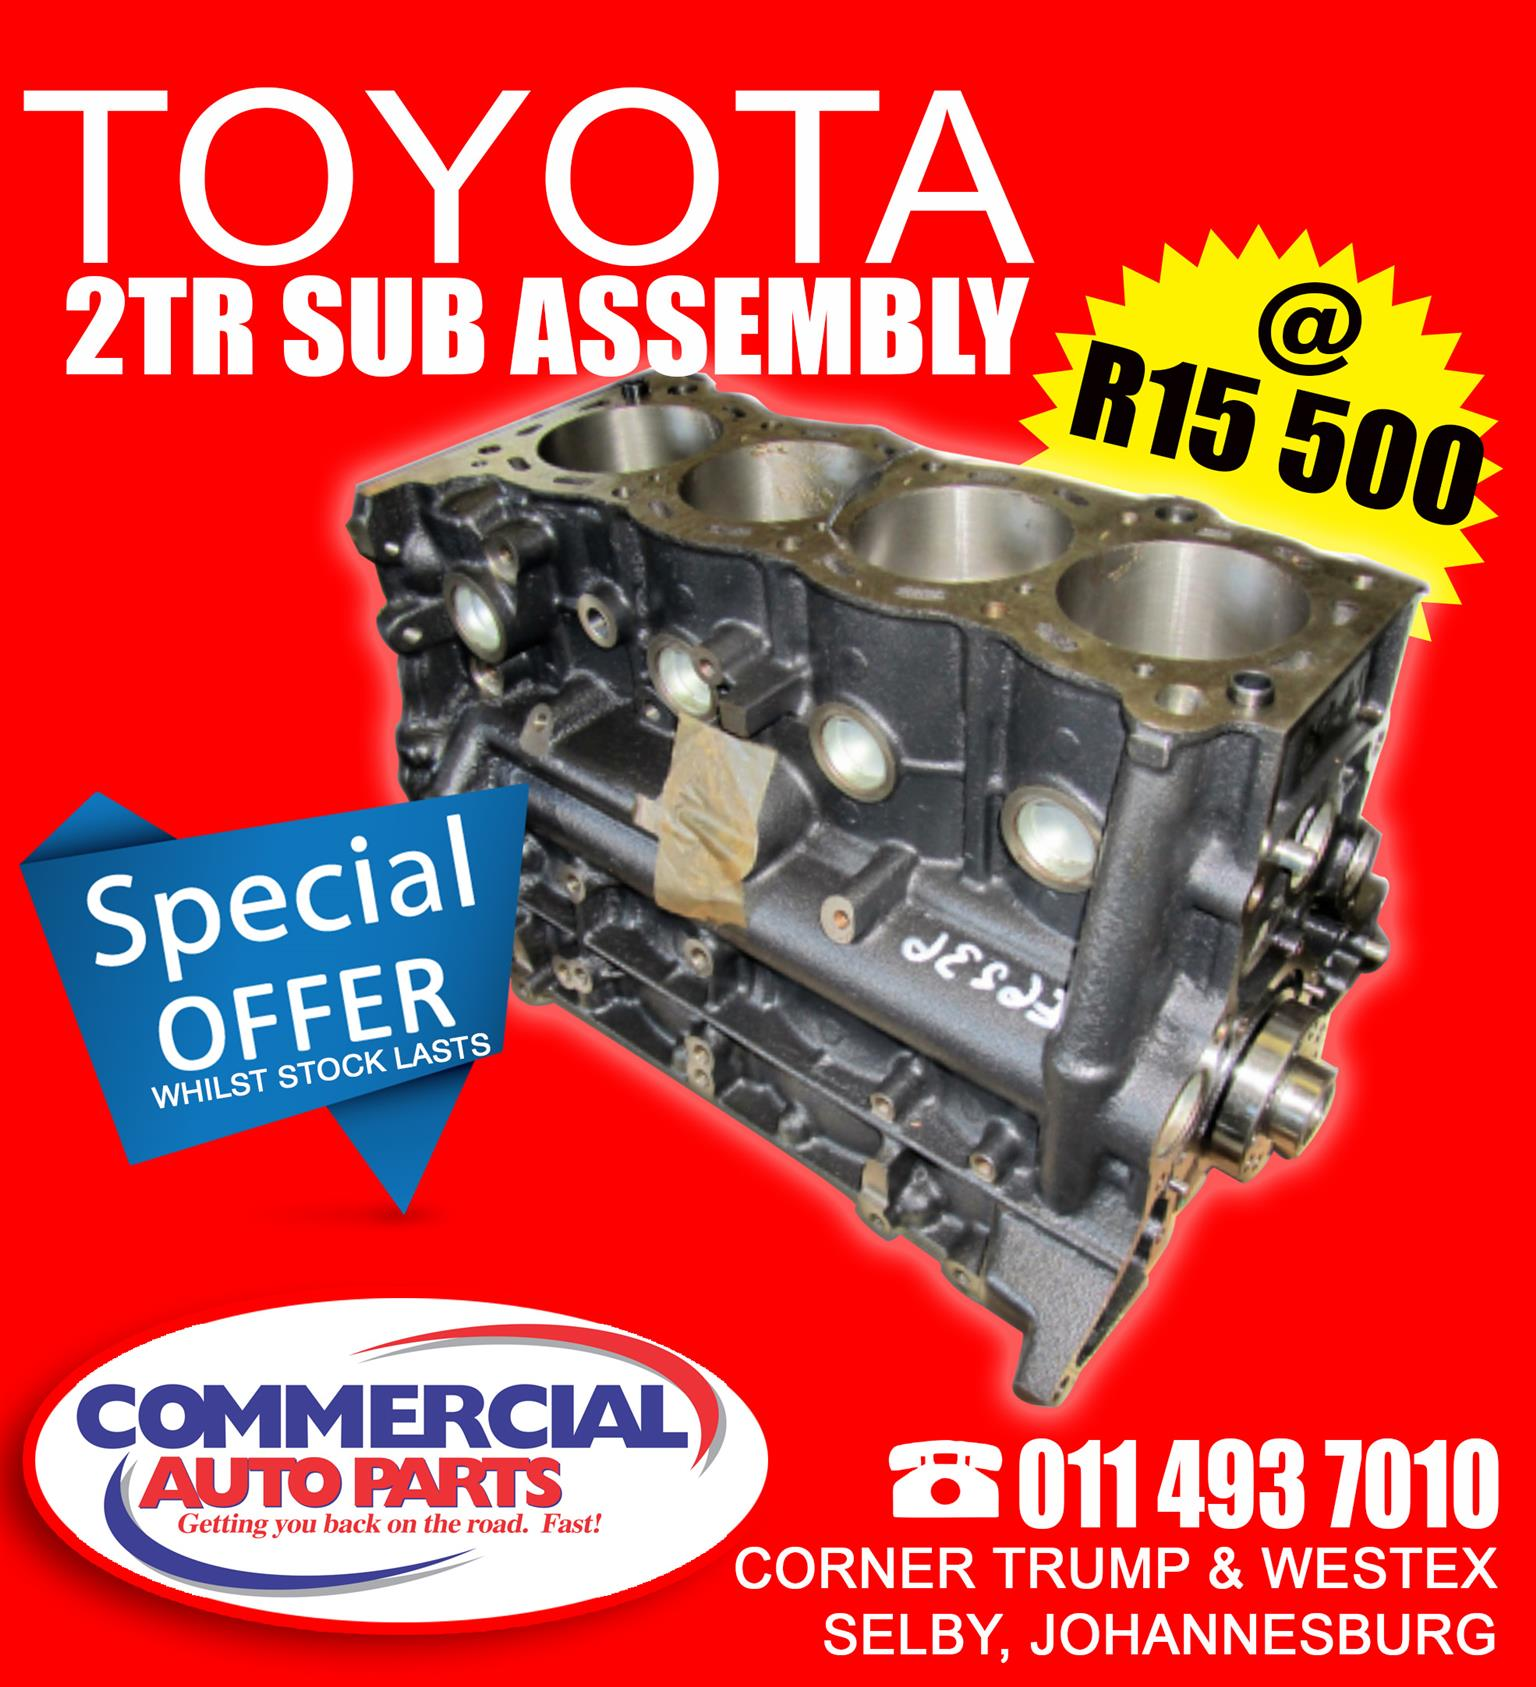 Toyota 2TR 2.7 Sub Assembly - New